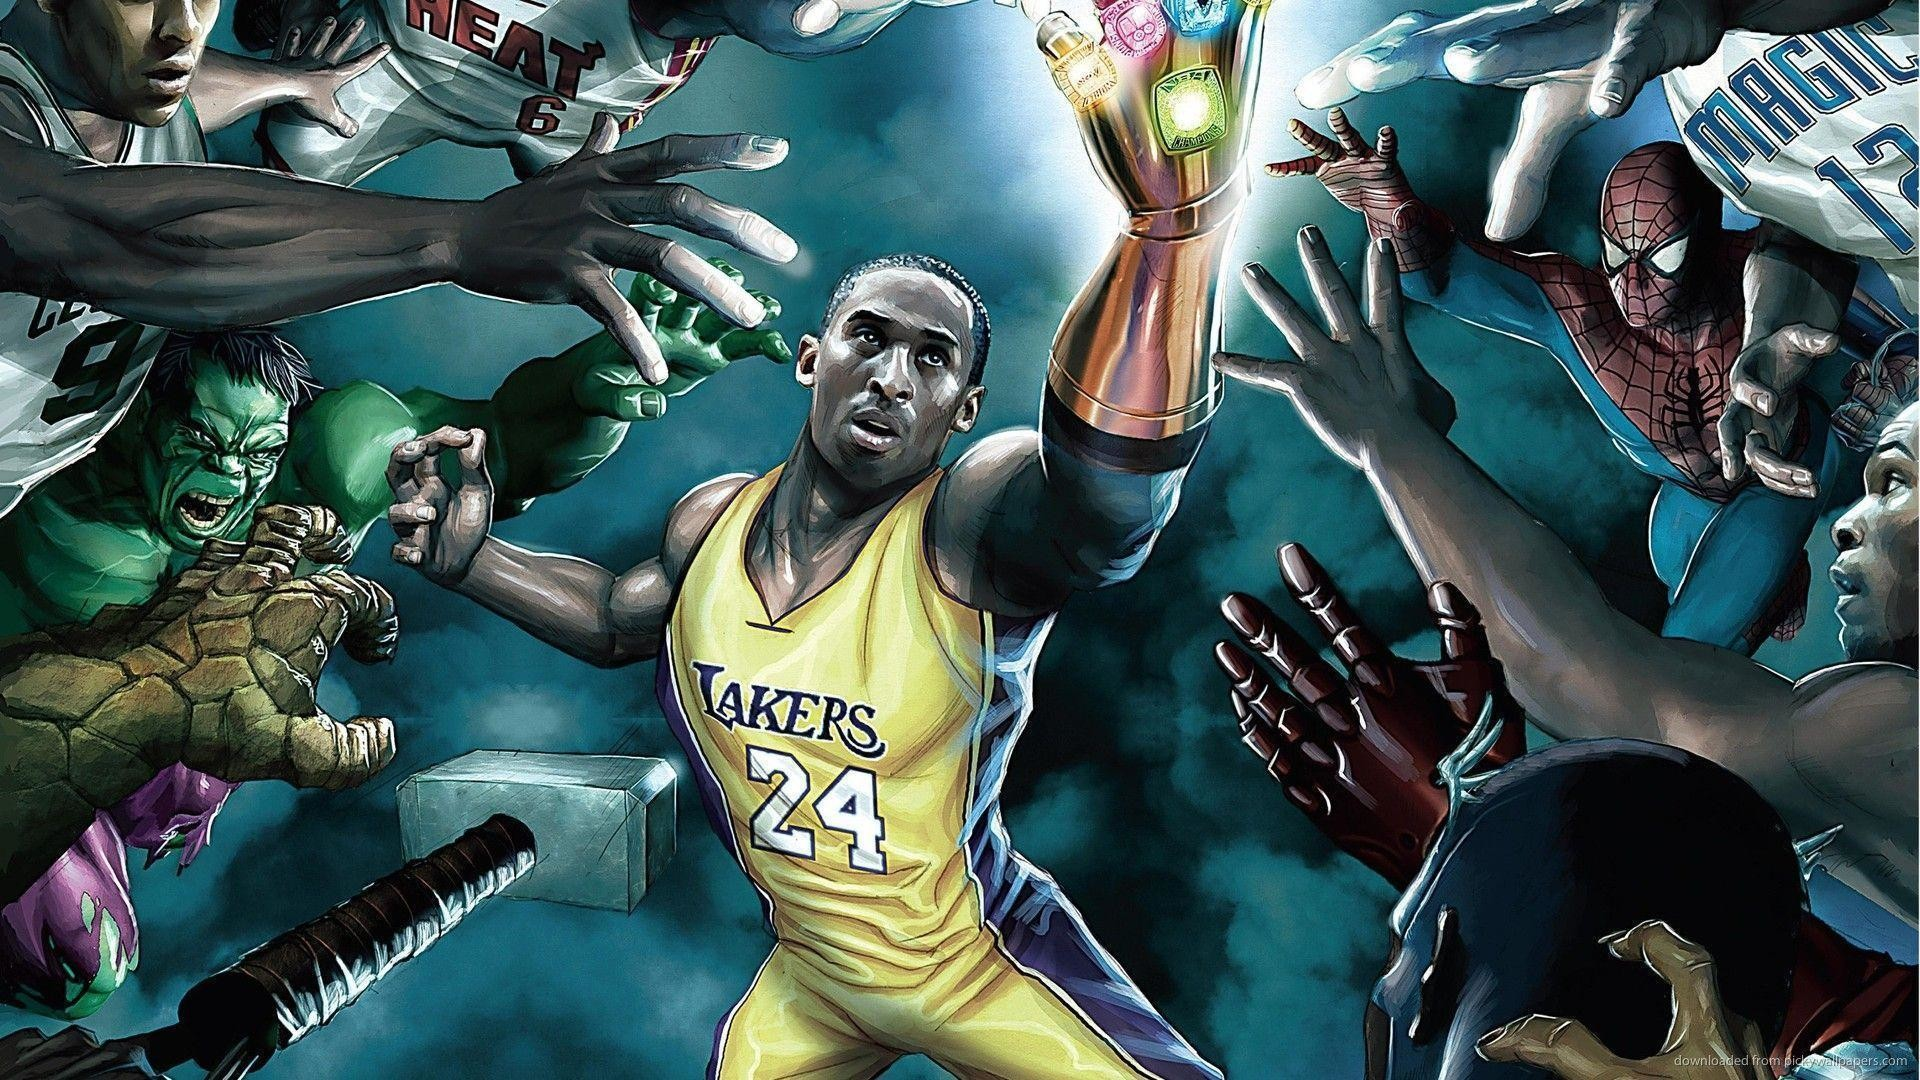 3840x2160 Custom Large Kobe Bryant Image 4K Wallpaper HD